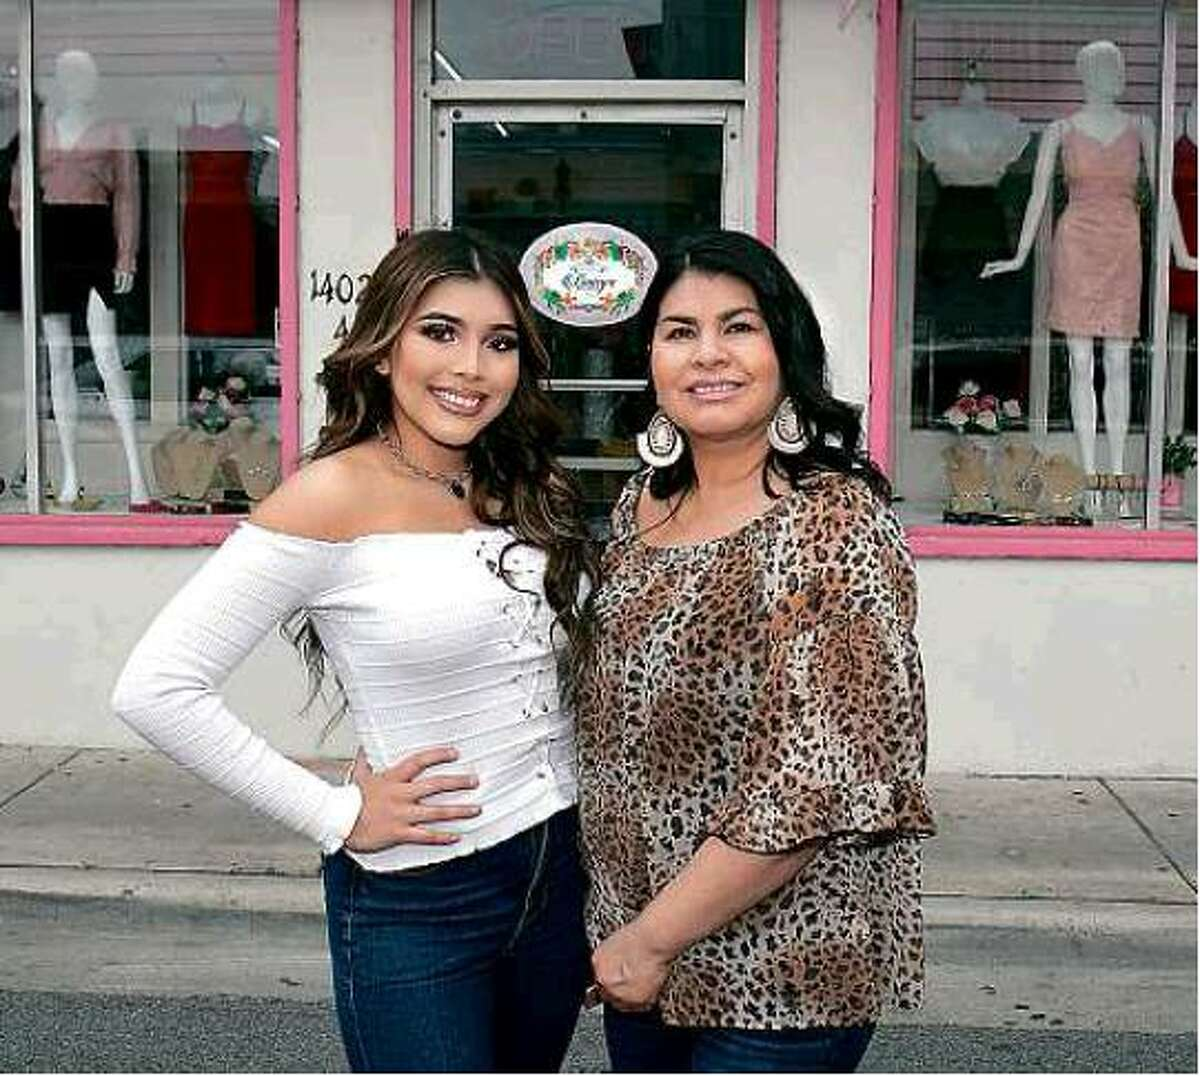 Daisy and Elizabeth Sandoval pose outside their store, Daisy's Boutique, in downtown Laredo.